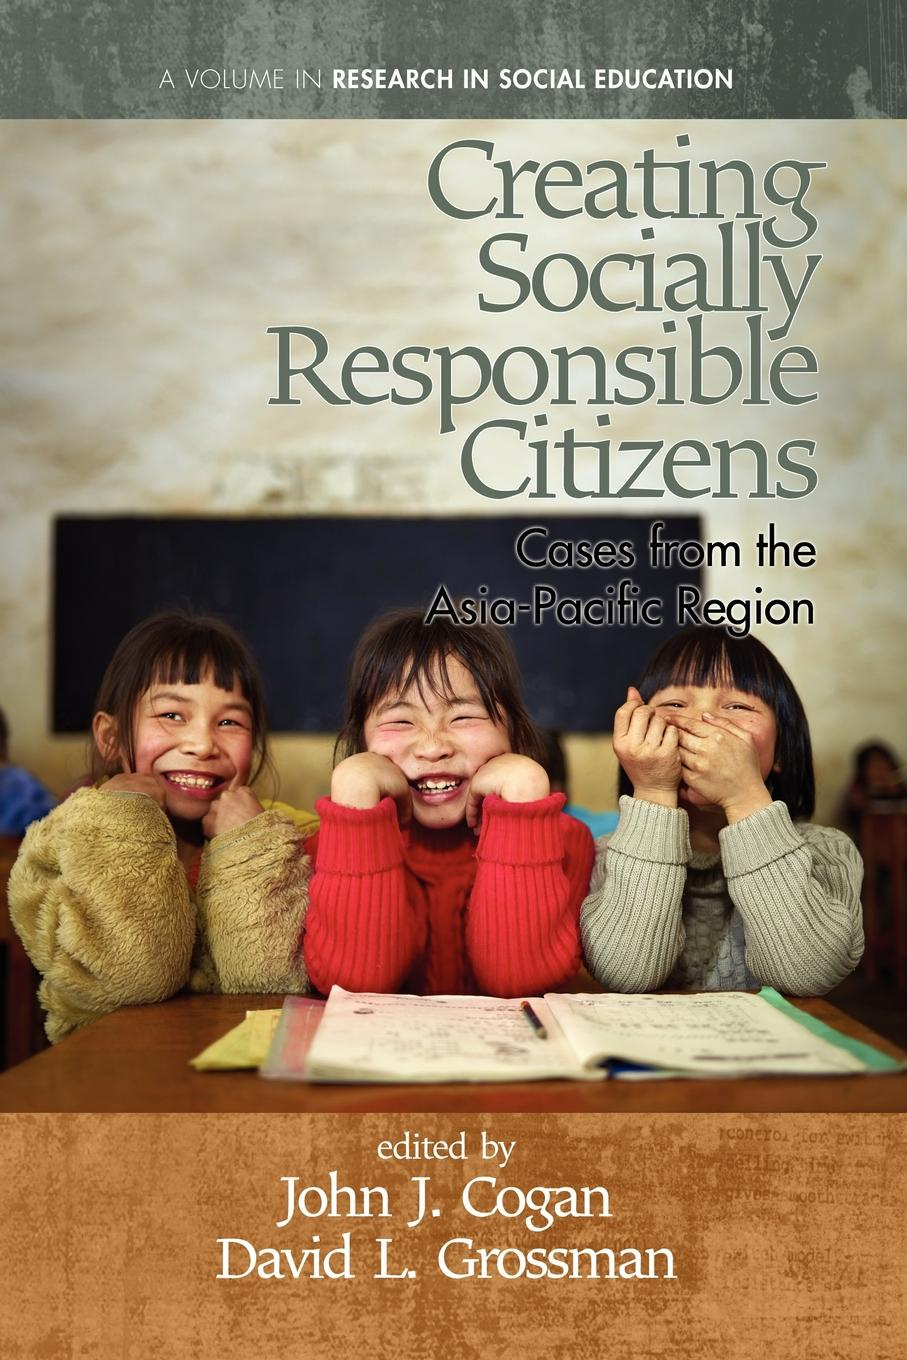 Creating Socially Responsible Citizens. Cases from the Asia-Pacific Region moral philosophy lifelong learning and nigerian education